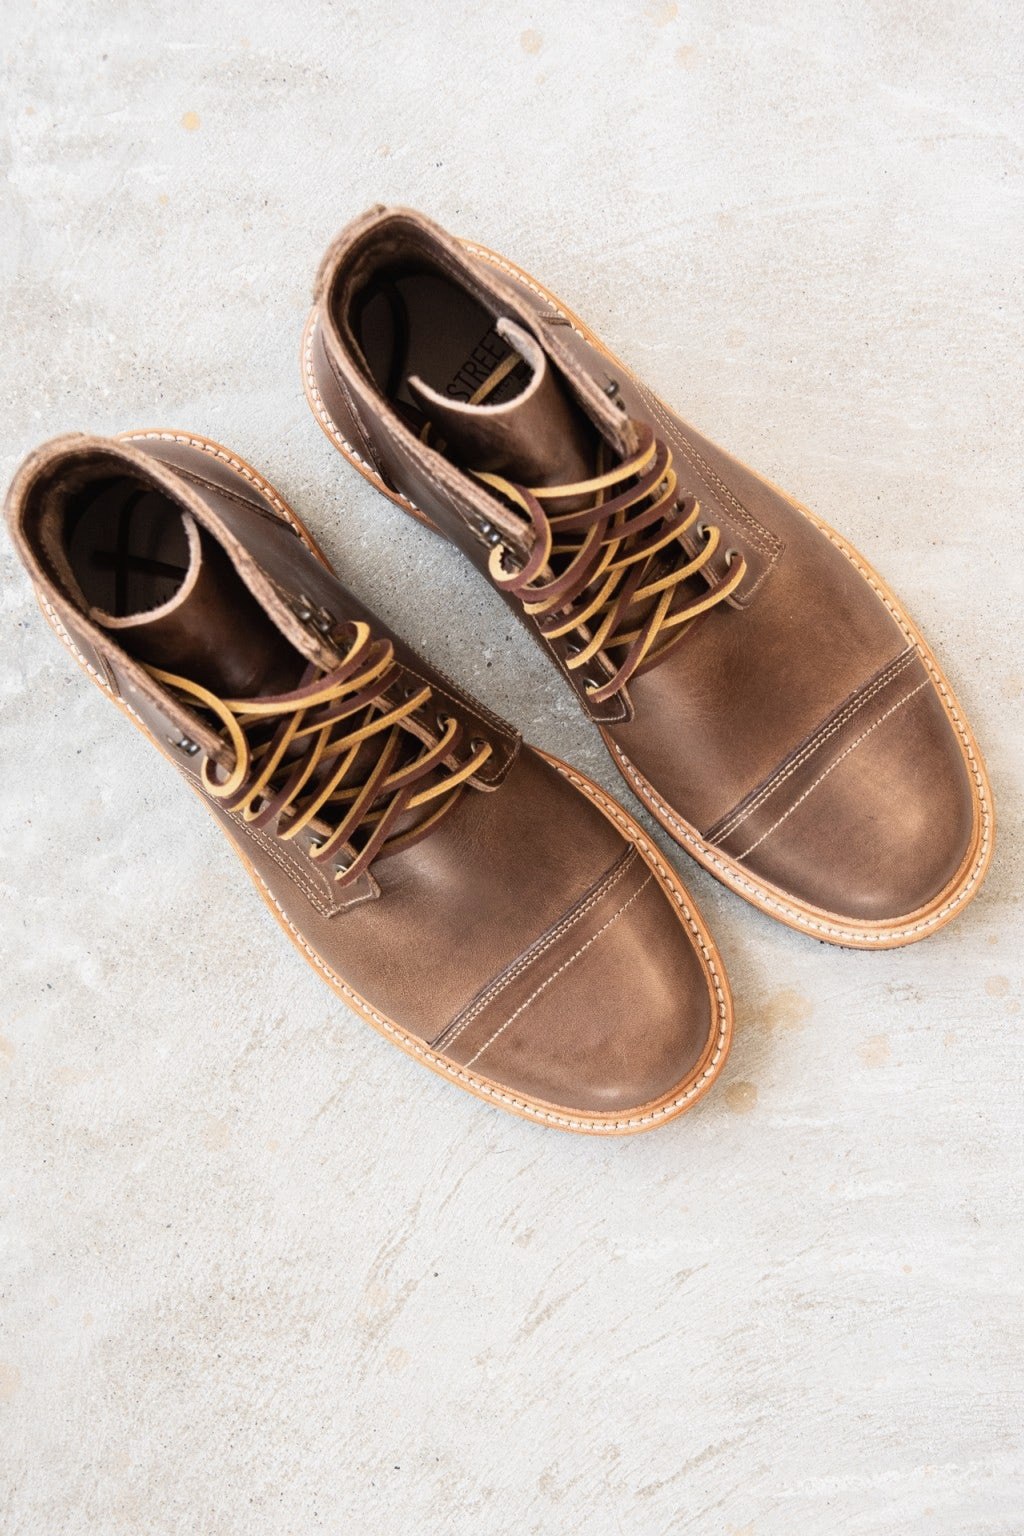 Oak Street Bootmakers Cap-Toe Trench Boot Natural Chromexcel